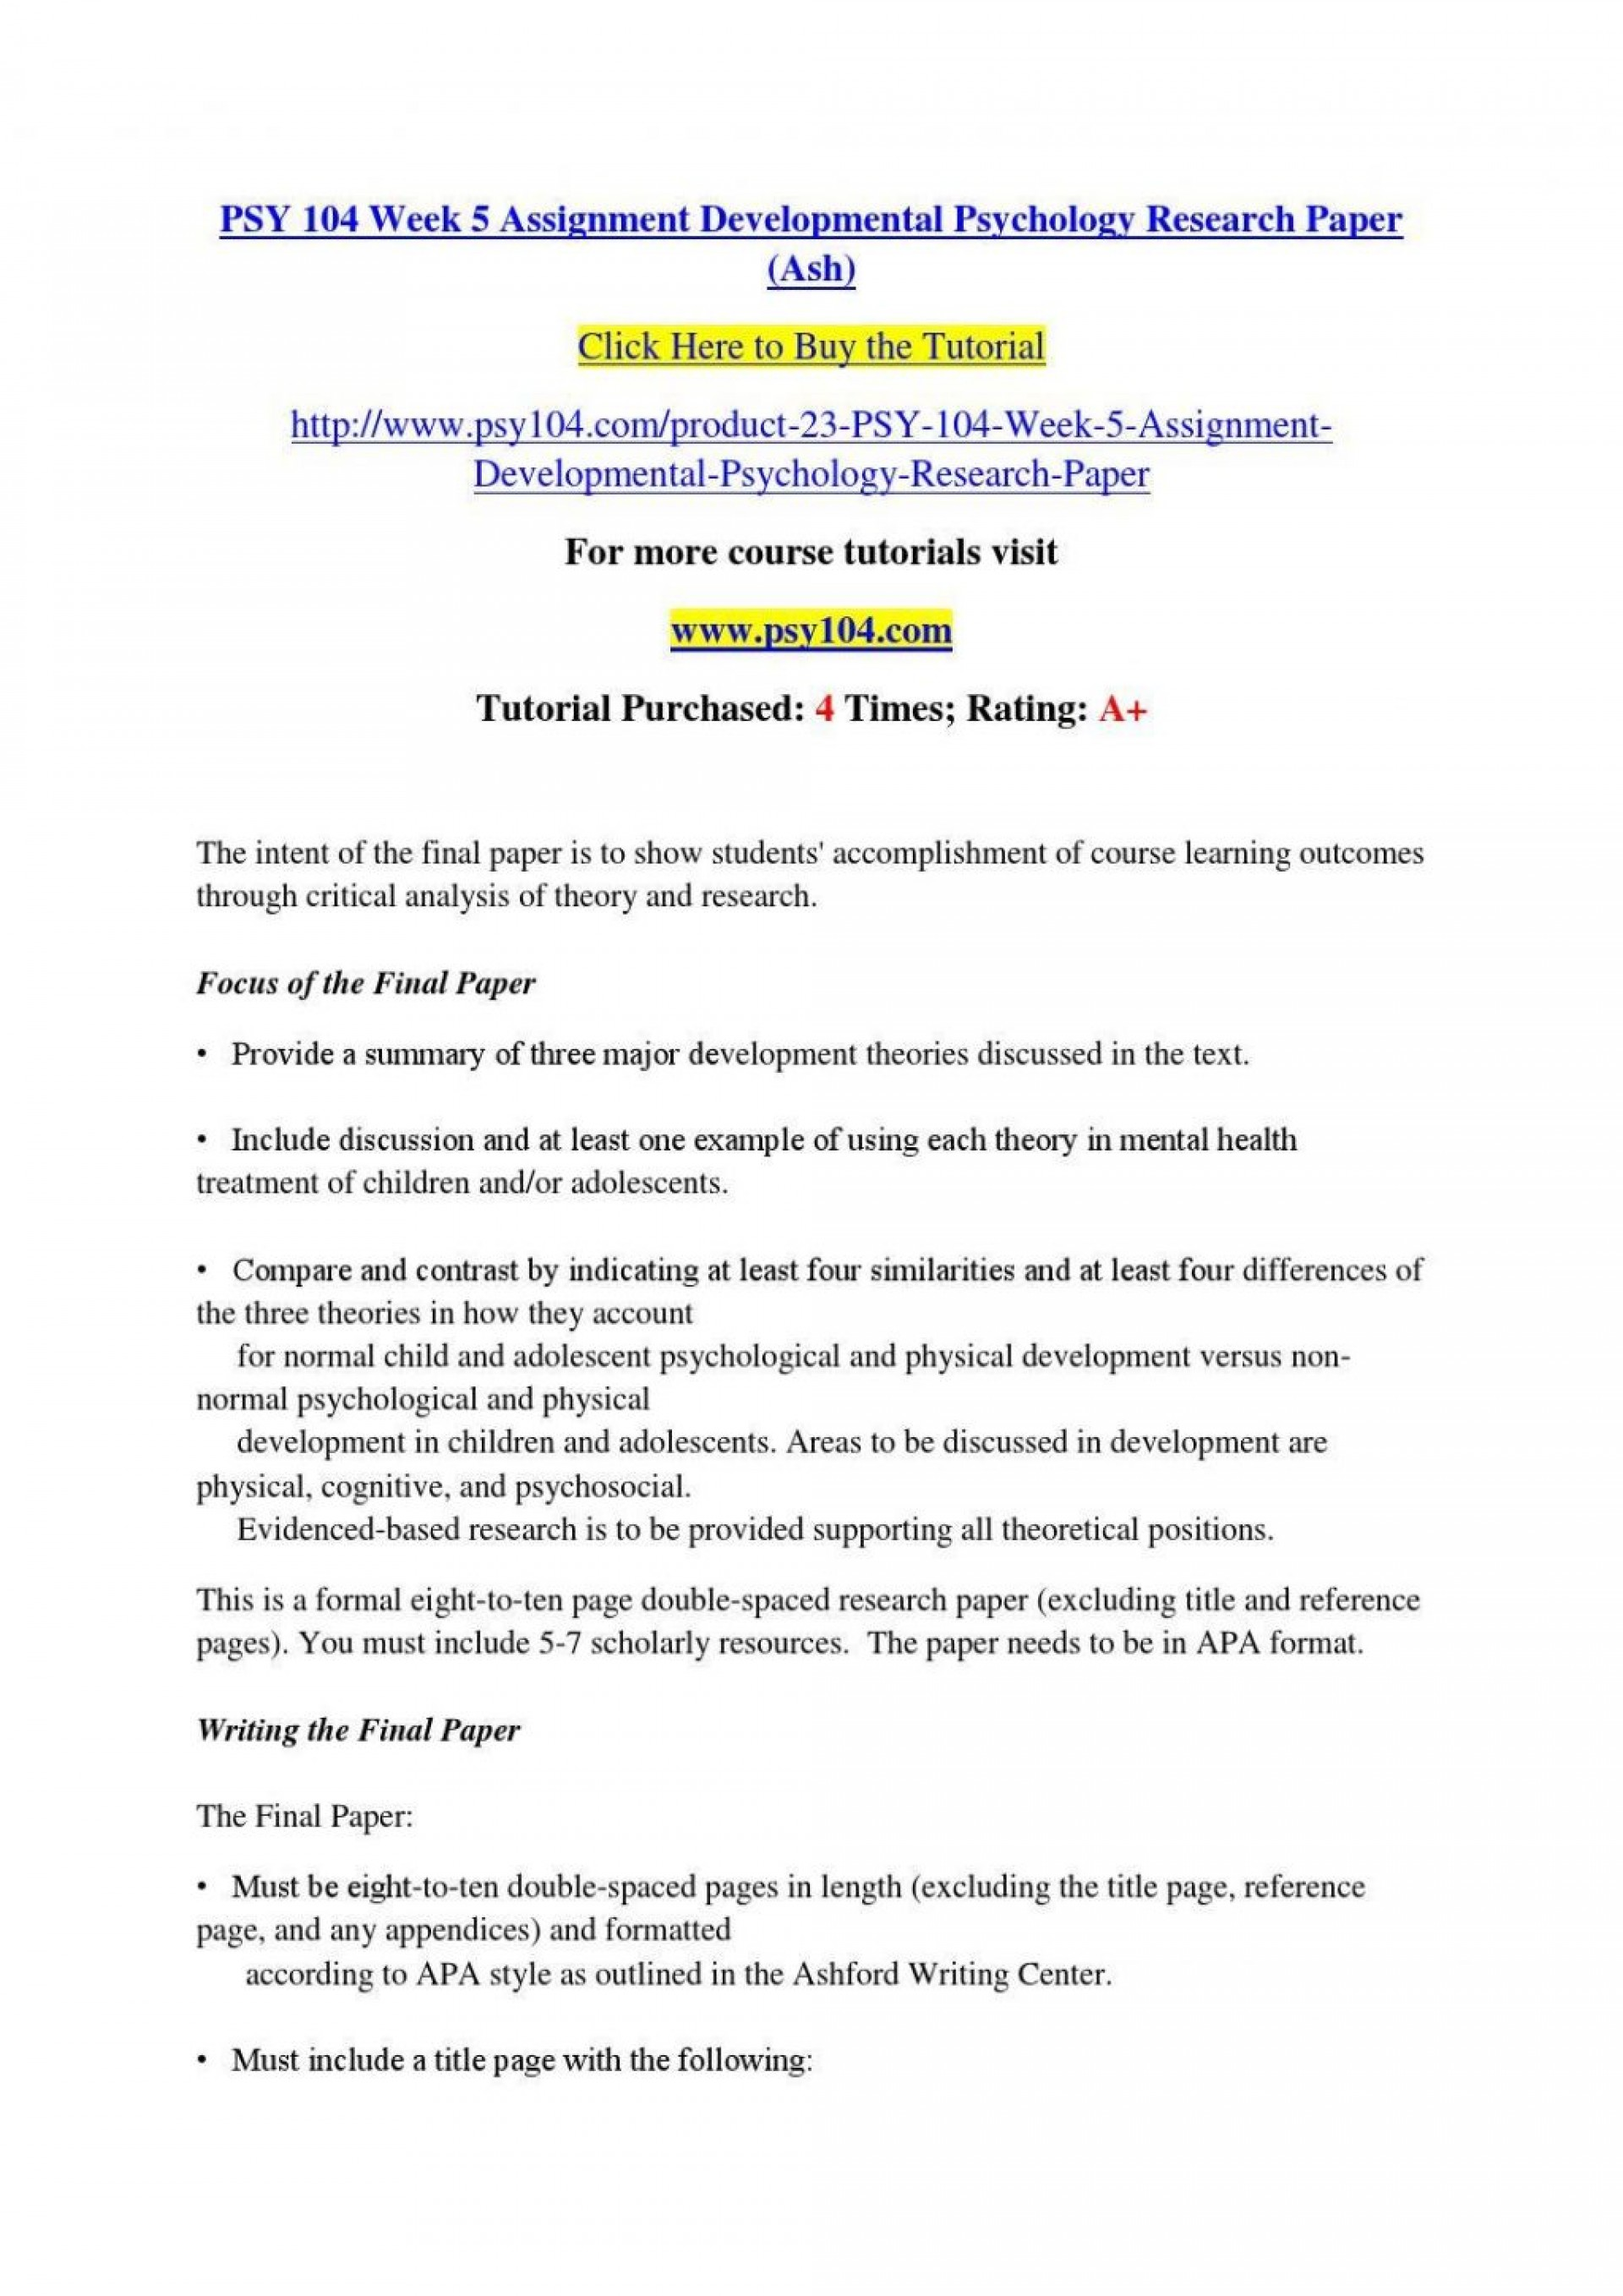 003 Developmental Psychology Essay Ideas Structure Psychological20ent Paper Topics Pdf20 1024x1449 Research Child For Dreaded Papers 1920